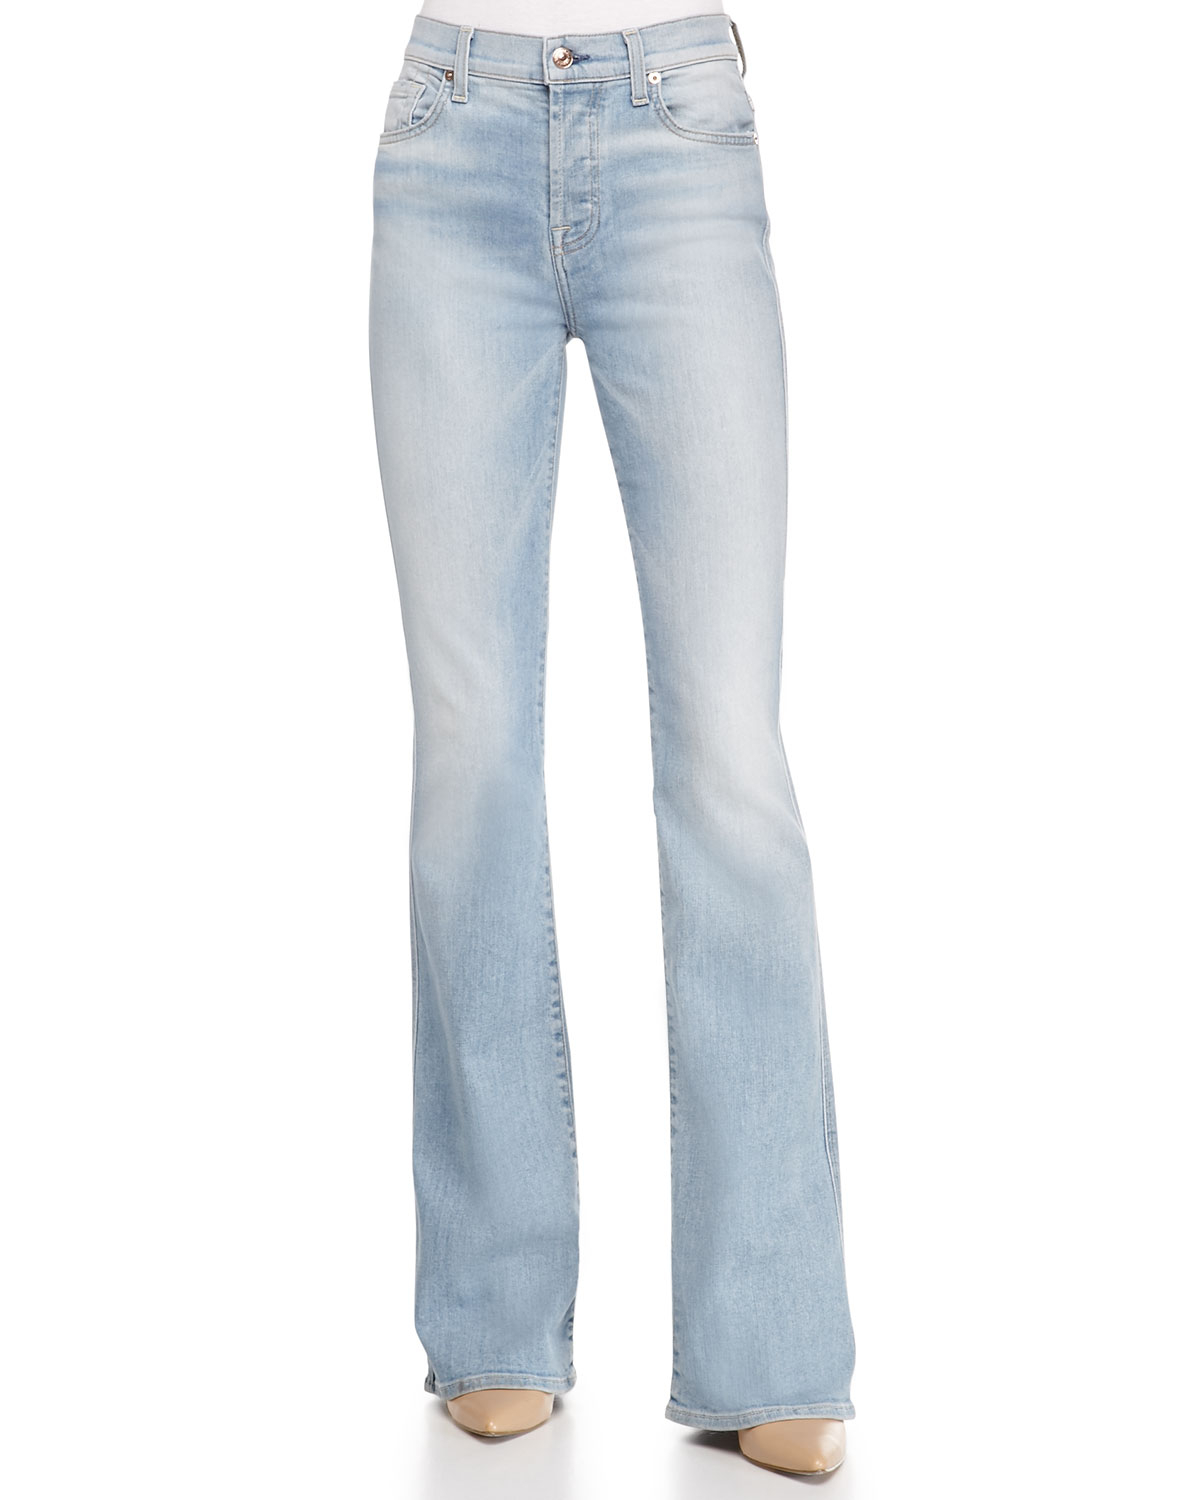 At Waist Bootcut Jeans - Jeans Am